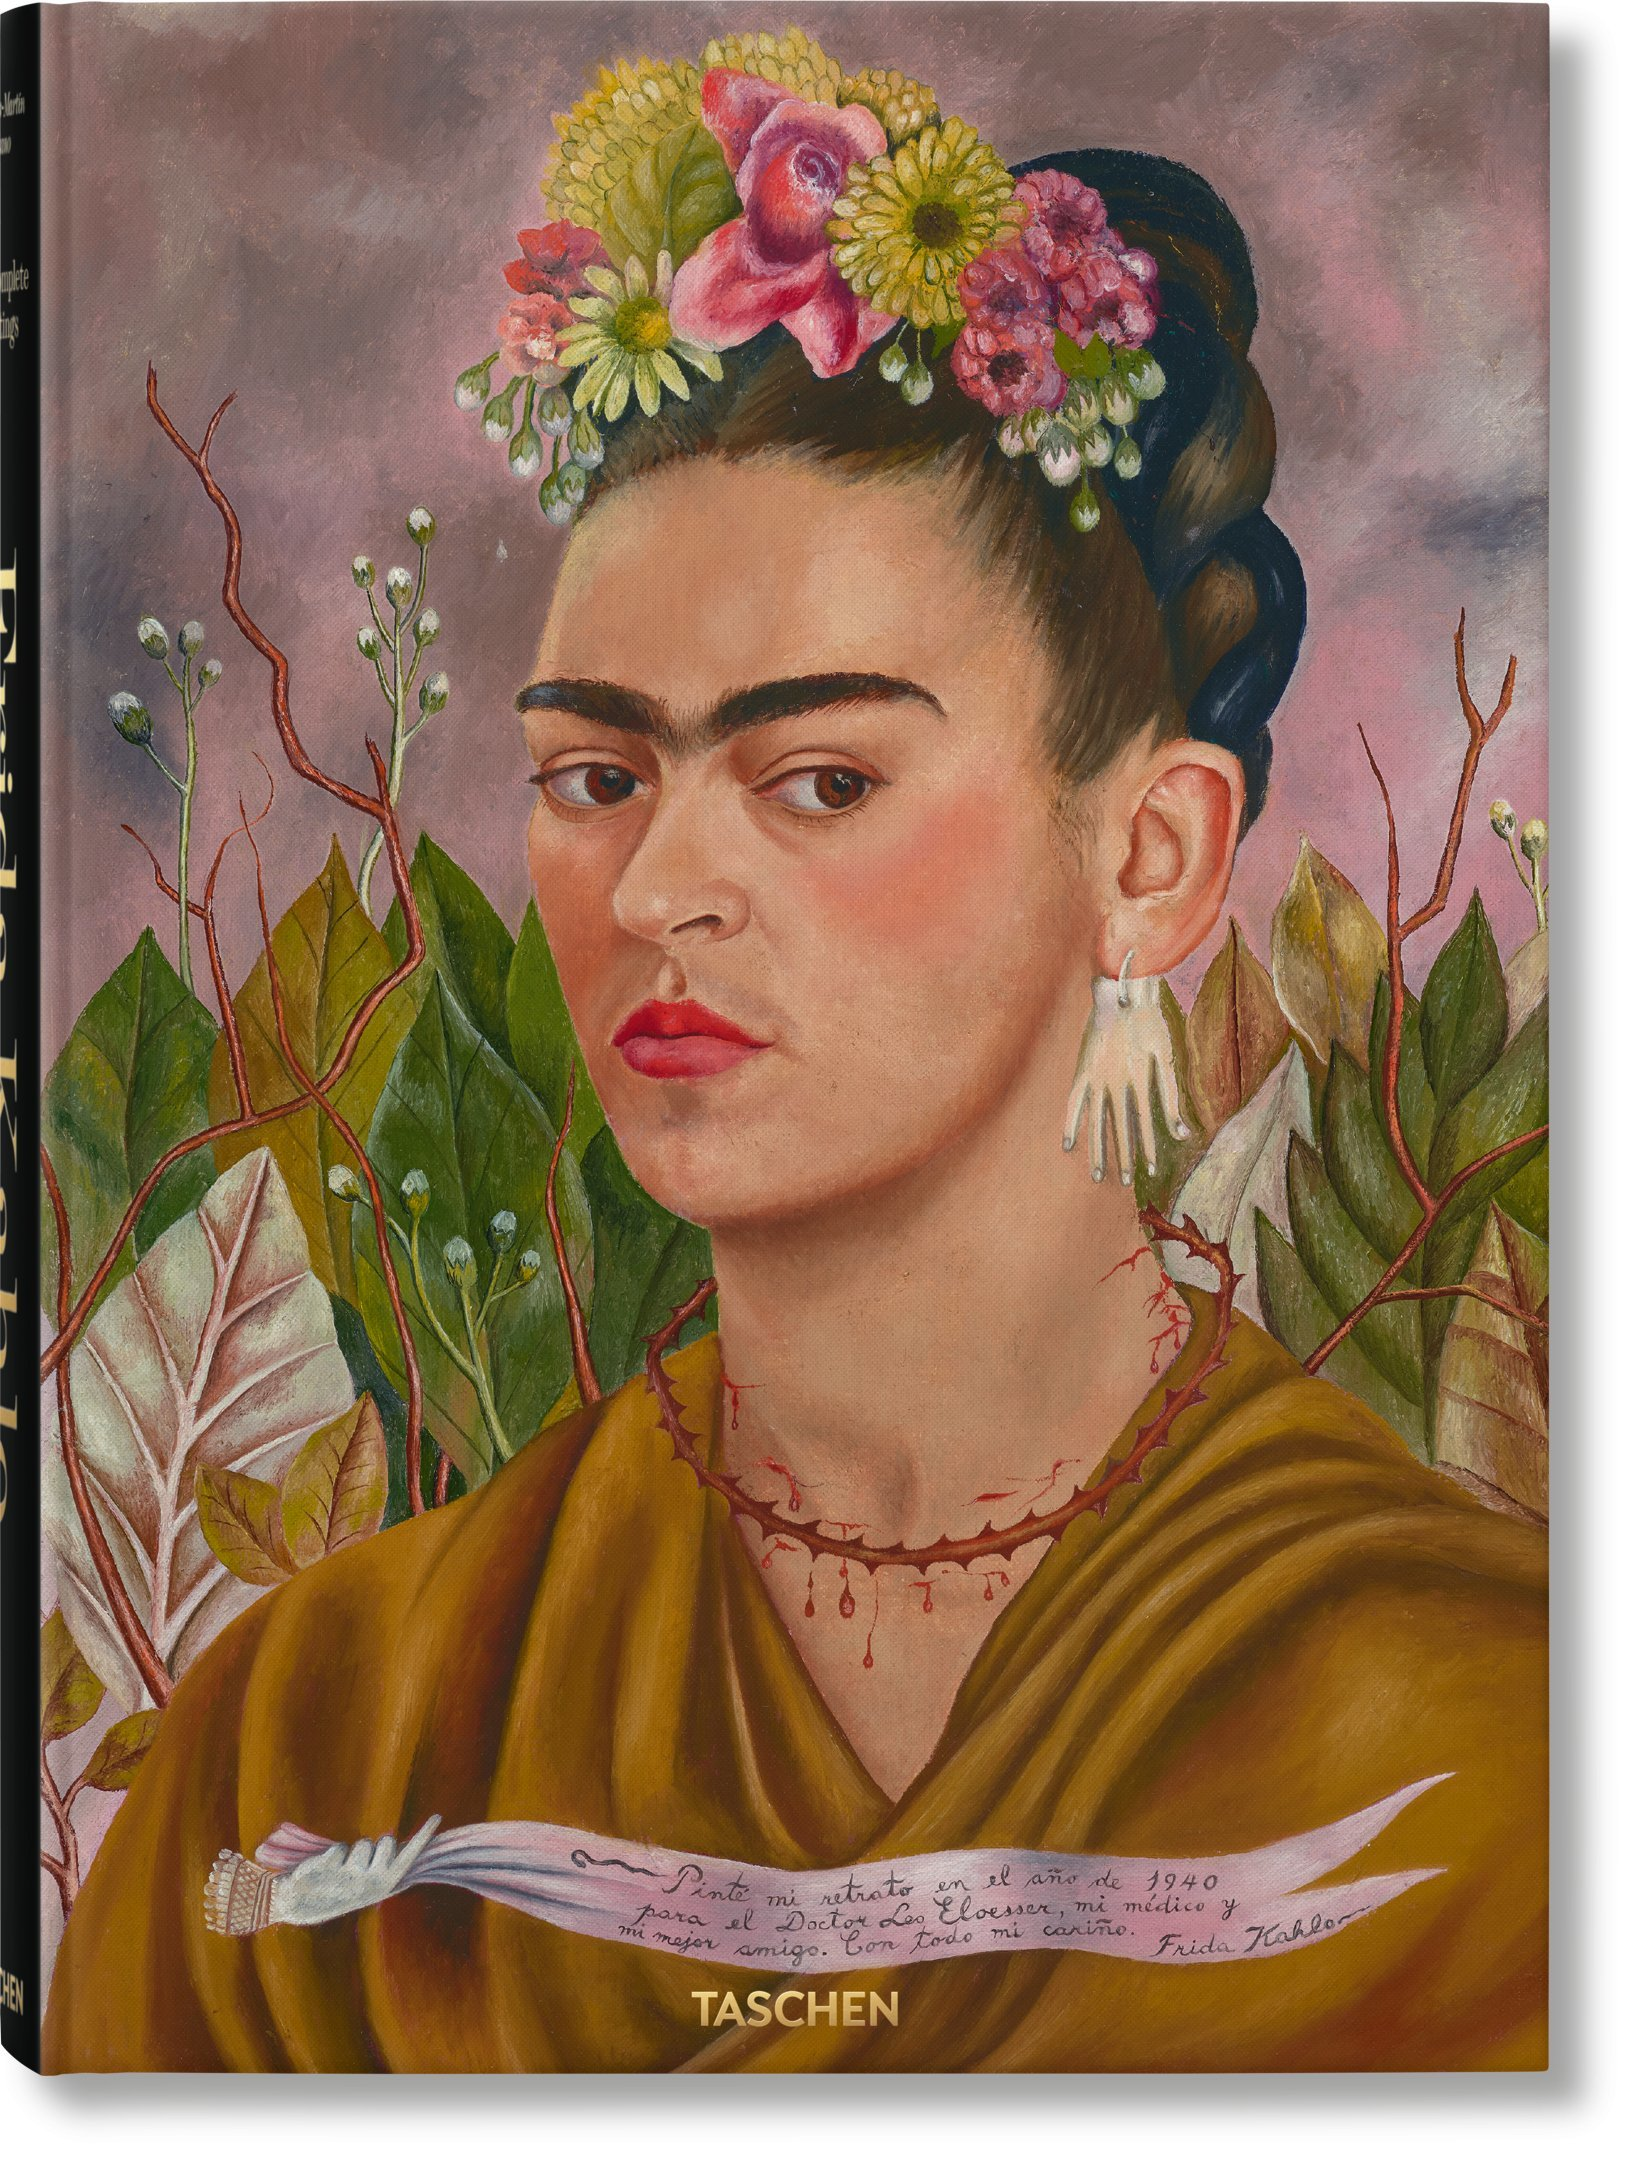 A New Book Gathers Every Single Documented Frida Kahlo Painting, Including Lost Works—See Images Here   Artnet News